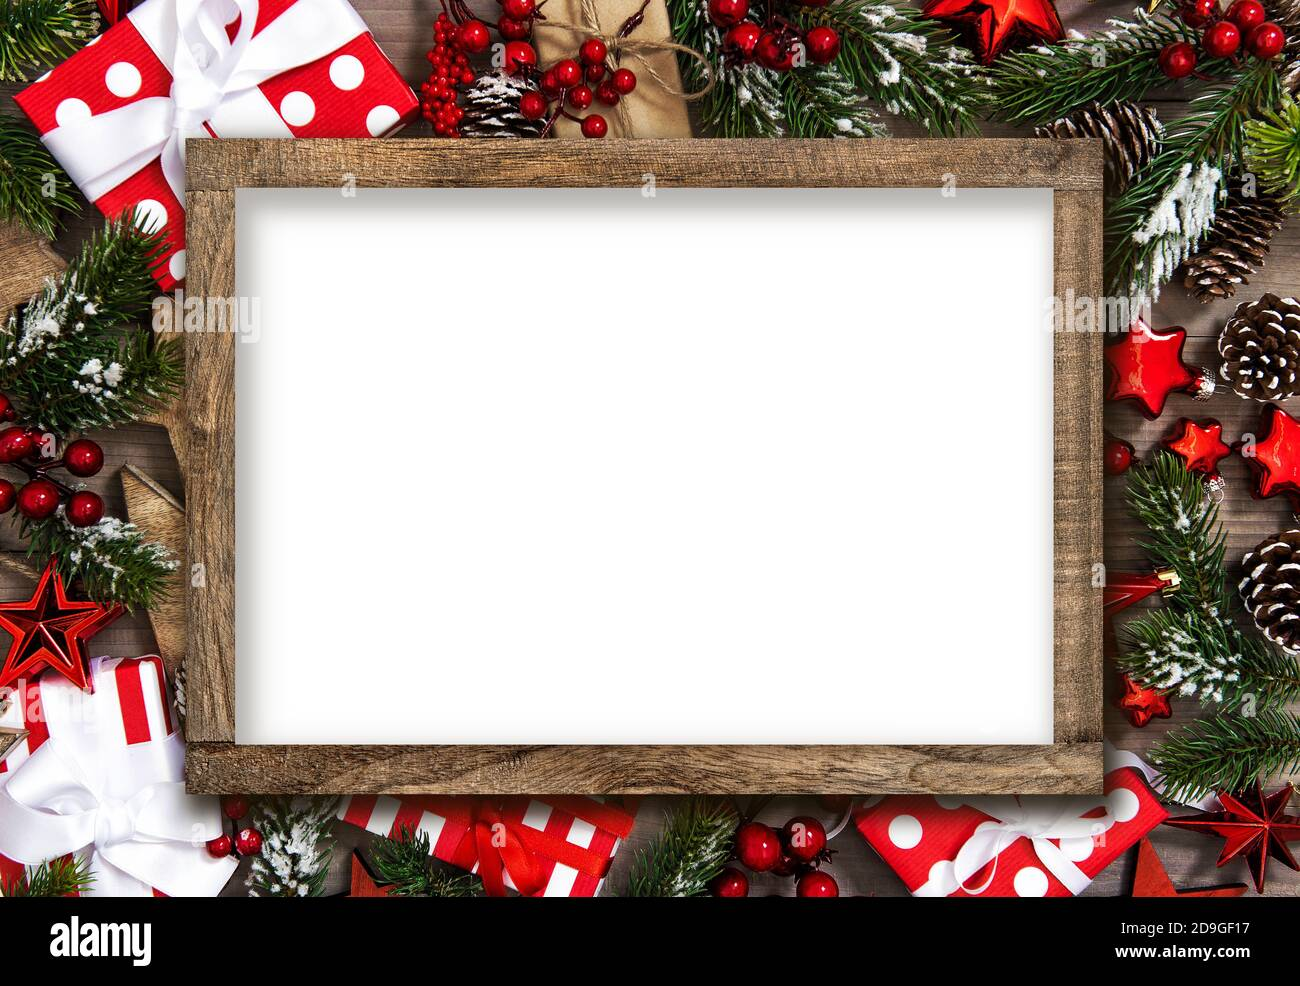 Frame mockup template. Christmas decoration gift box red stars and ornaments Stock Photo